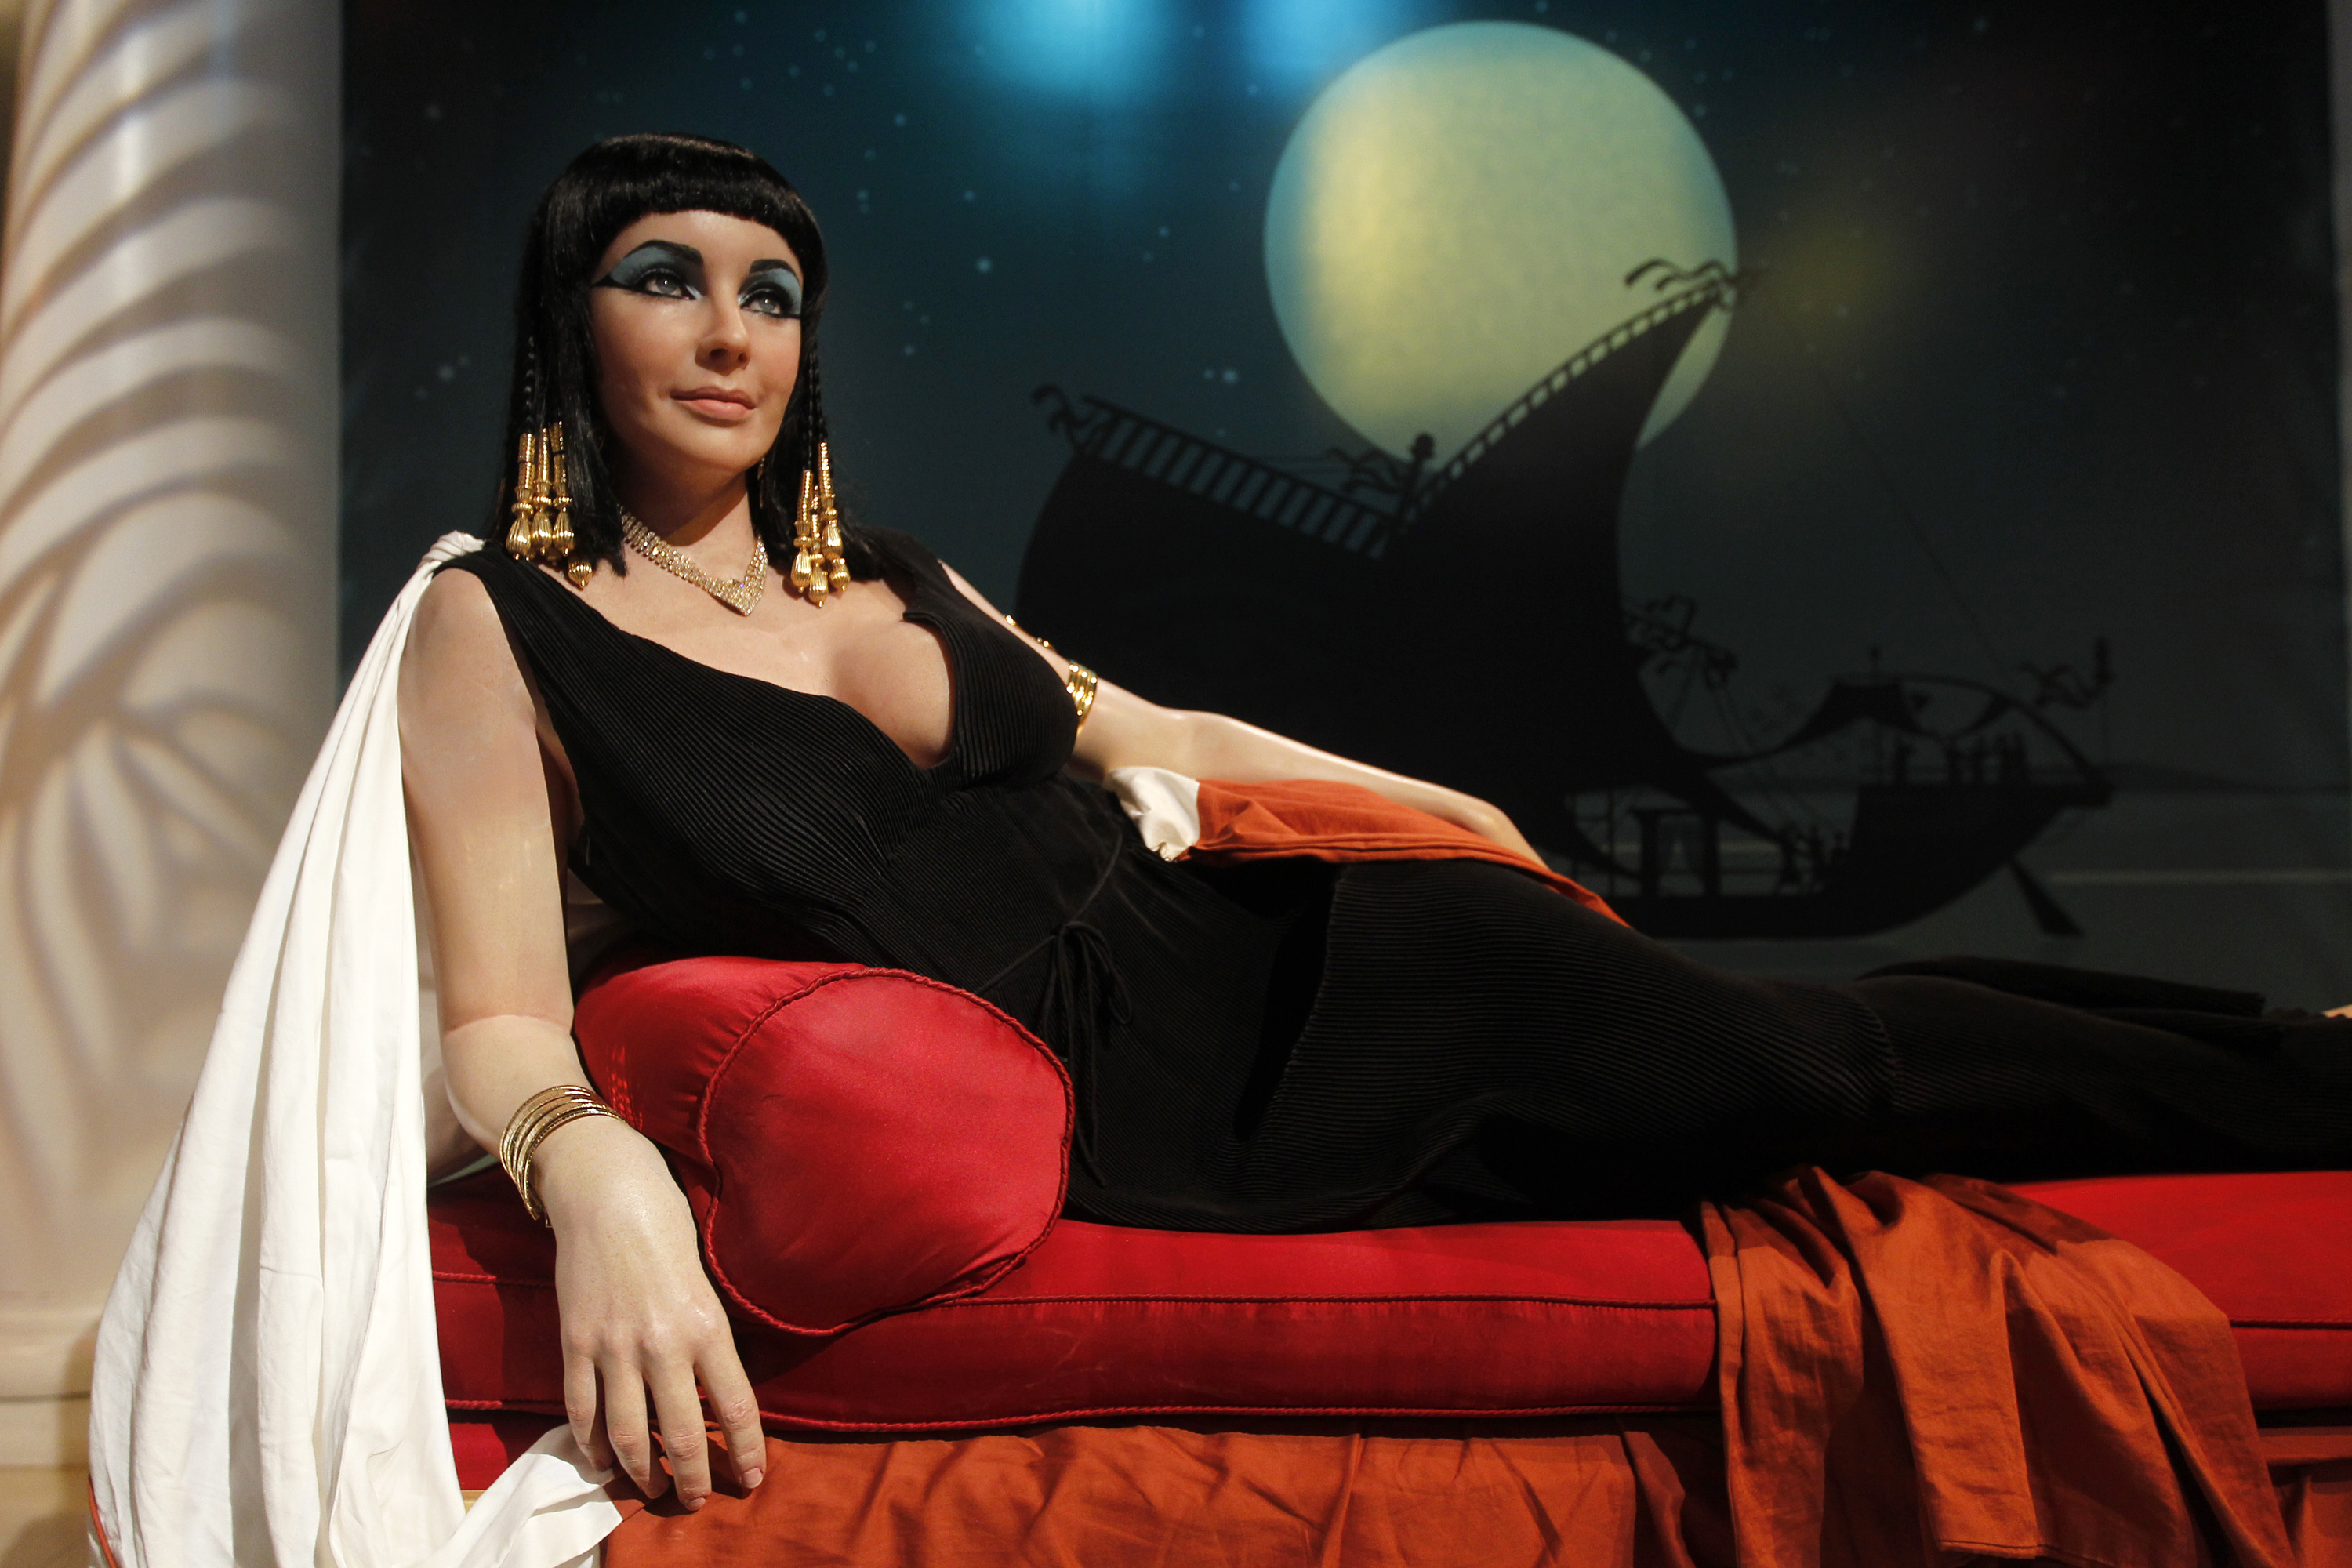 Elizabeth Tyler as Cleopatra lounges on a red cushion, he straight dark hair decorated with gold beads.